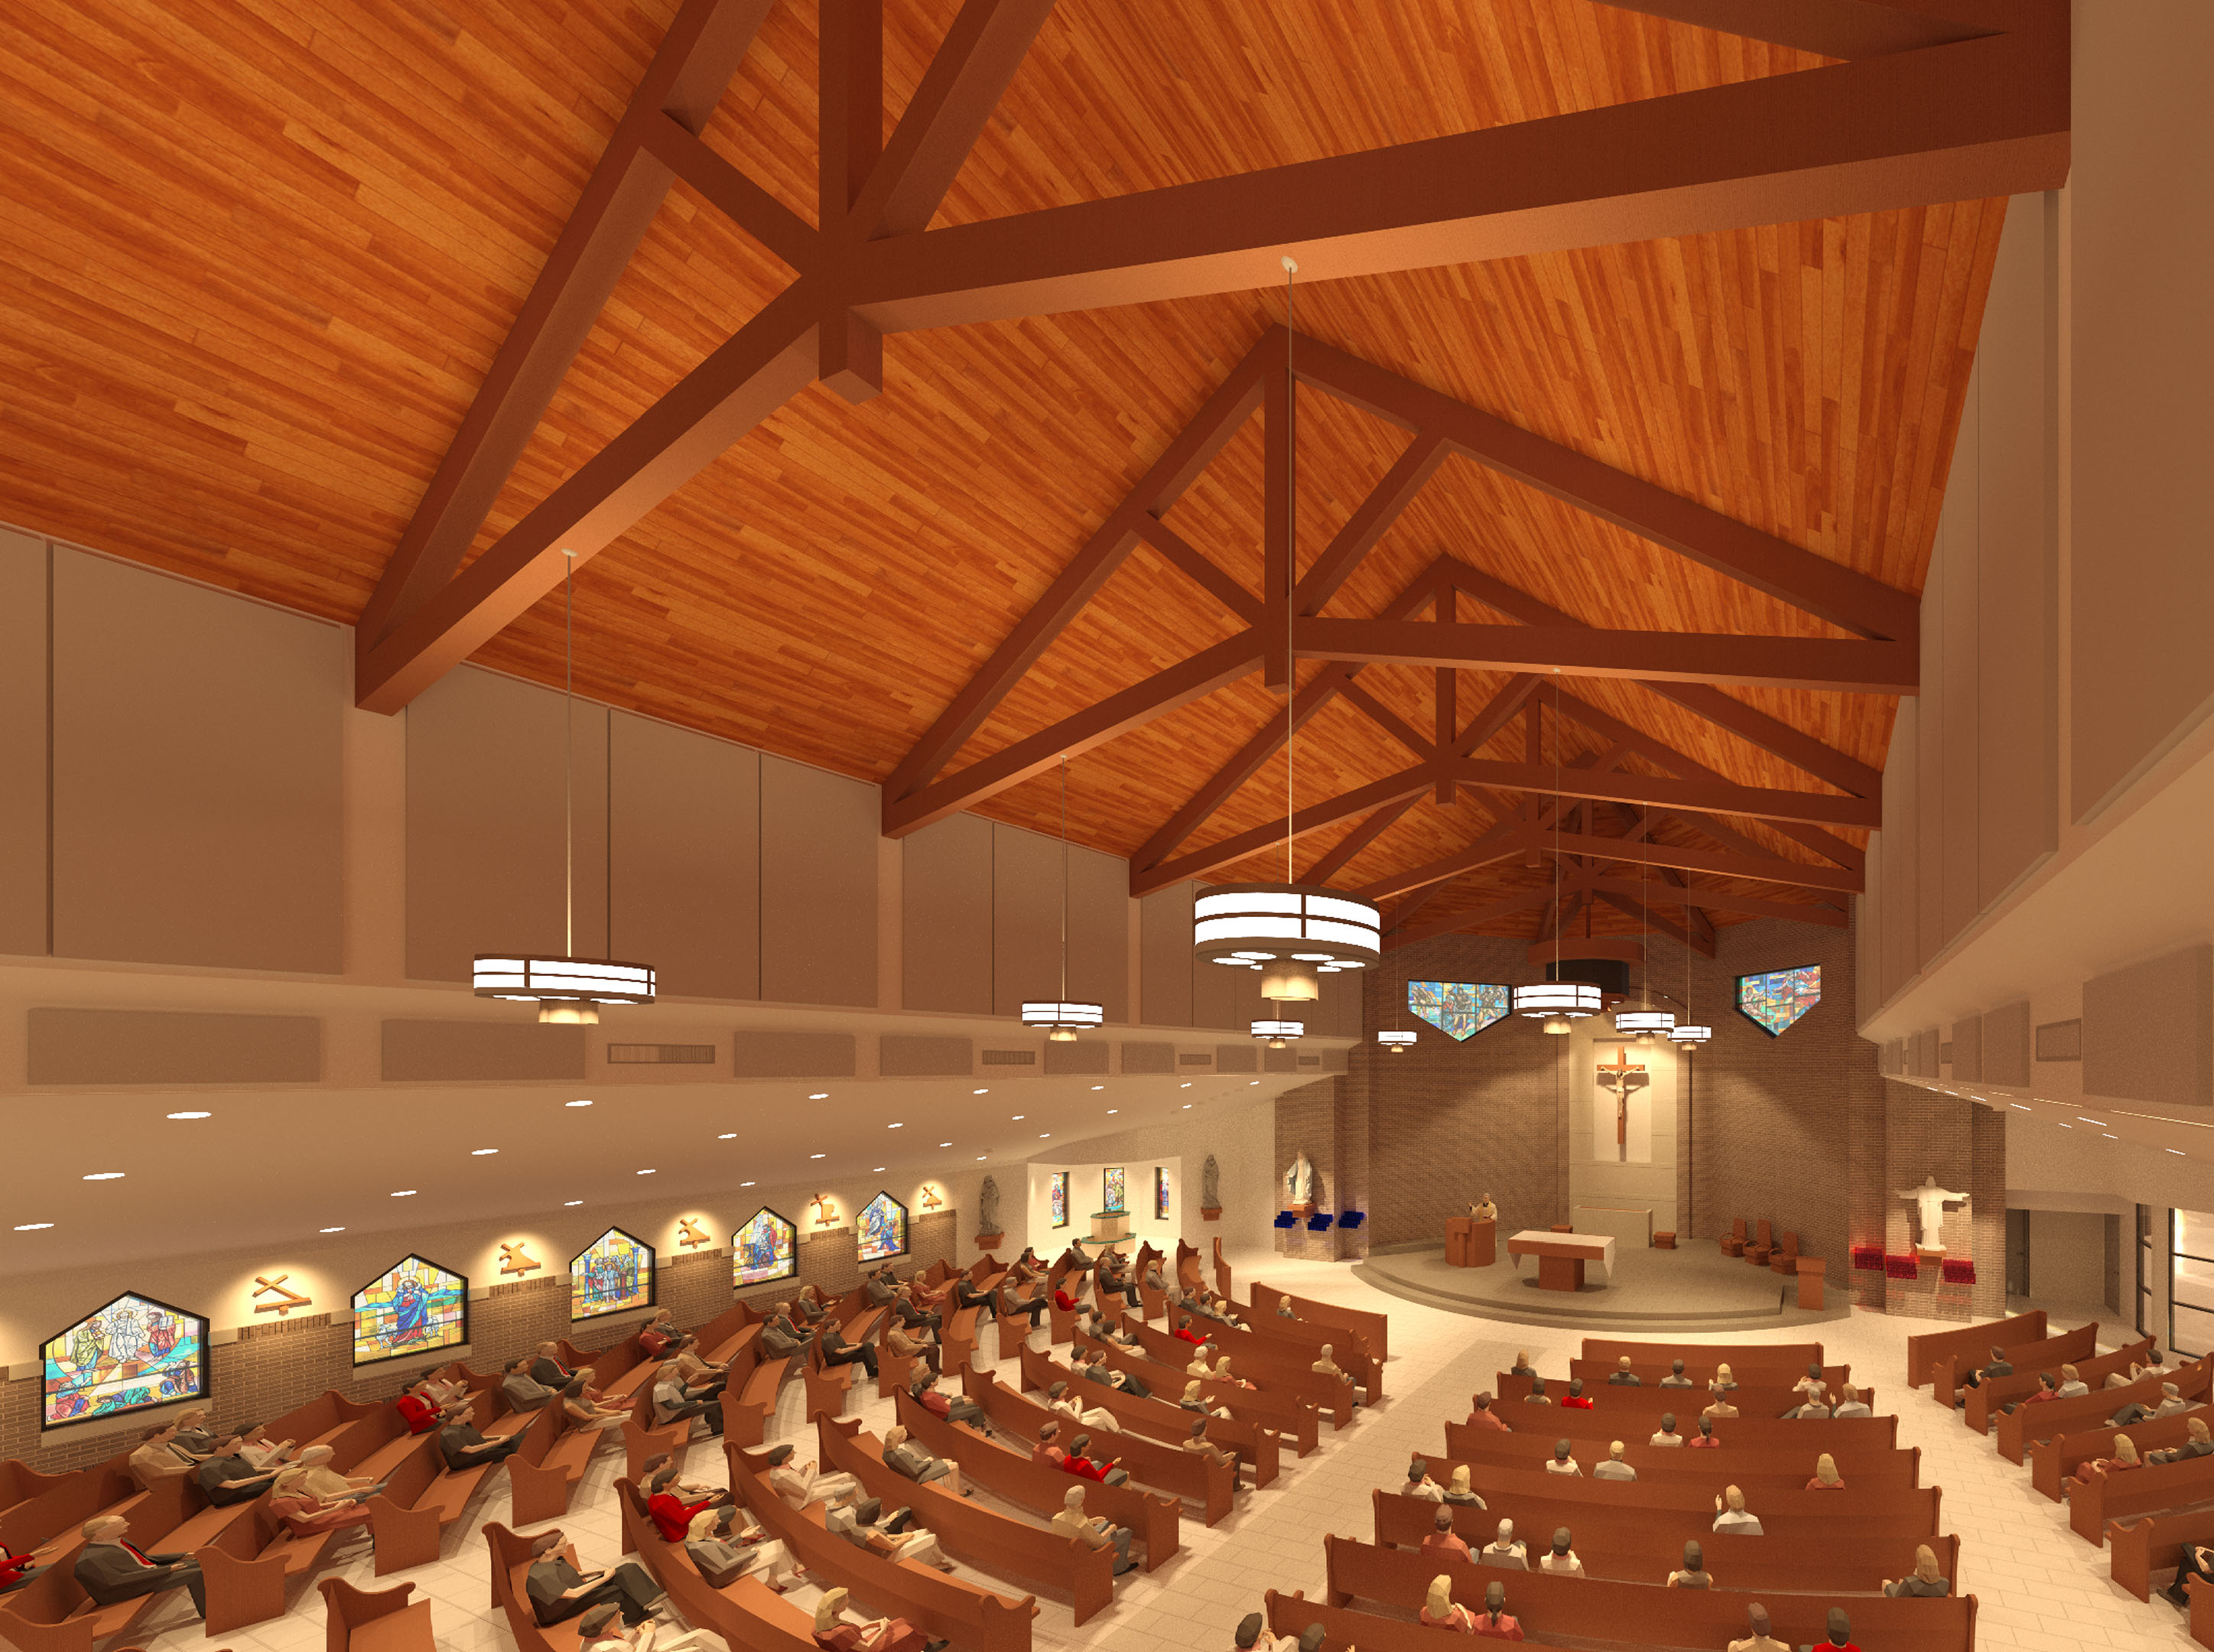 Saint Anthony Catholic Church Renovations